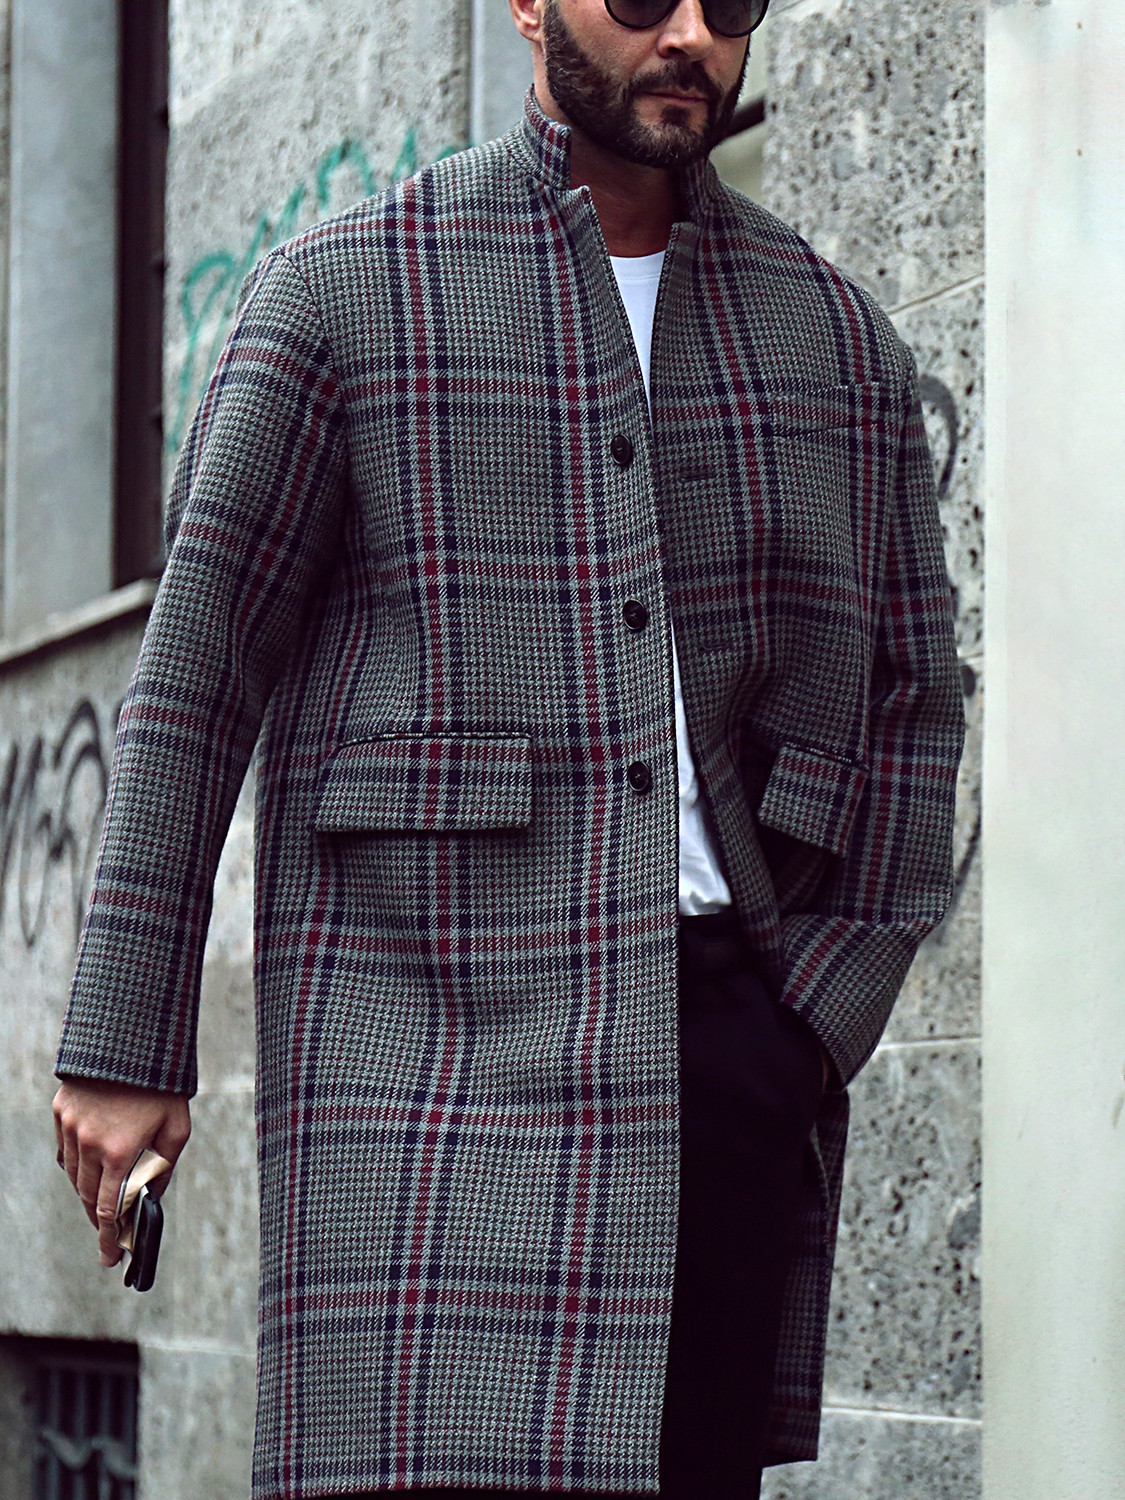 Men's outfit idea for 2021 with grey single-breasted overcoat, white long-sleeved t-shirt, black chinos, black sunglasses, black trainers. Suitable for autumn and winter.